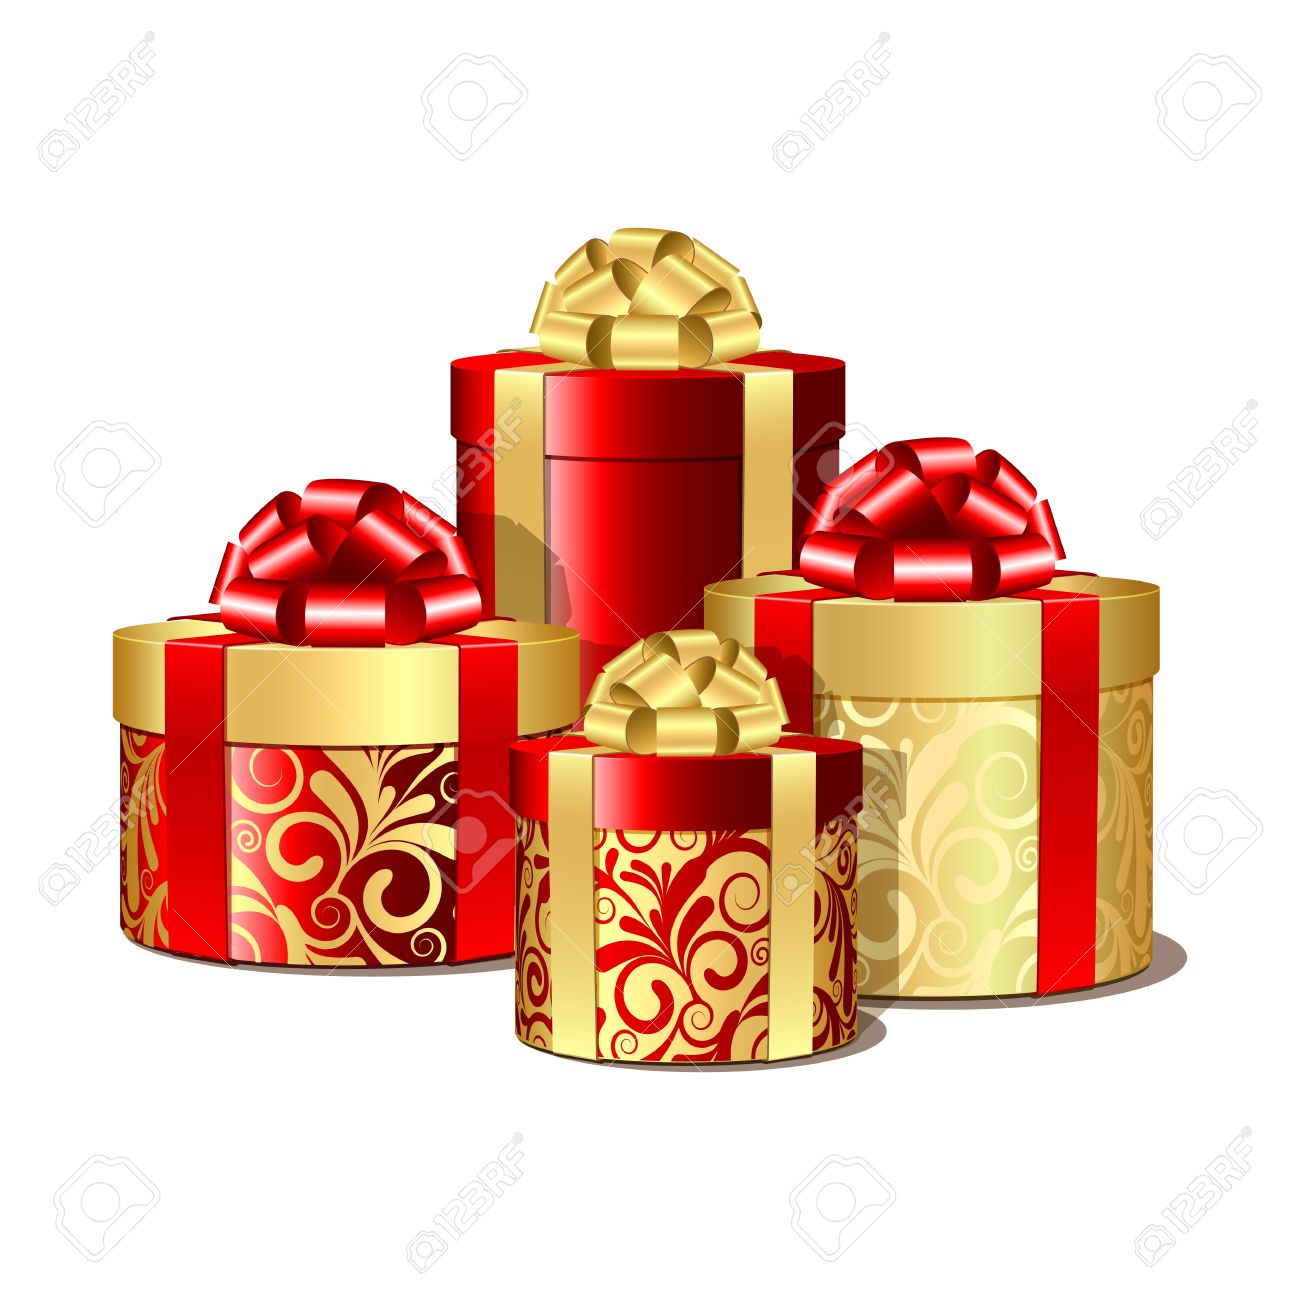 Red and gold gift boxes  Vector illustration Stock Vector - 16693034